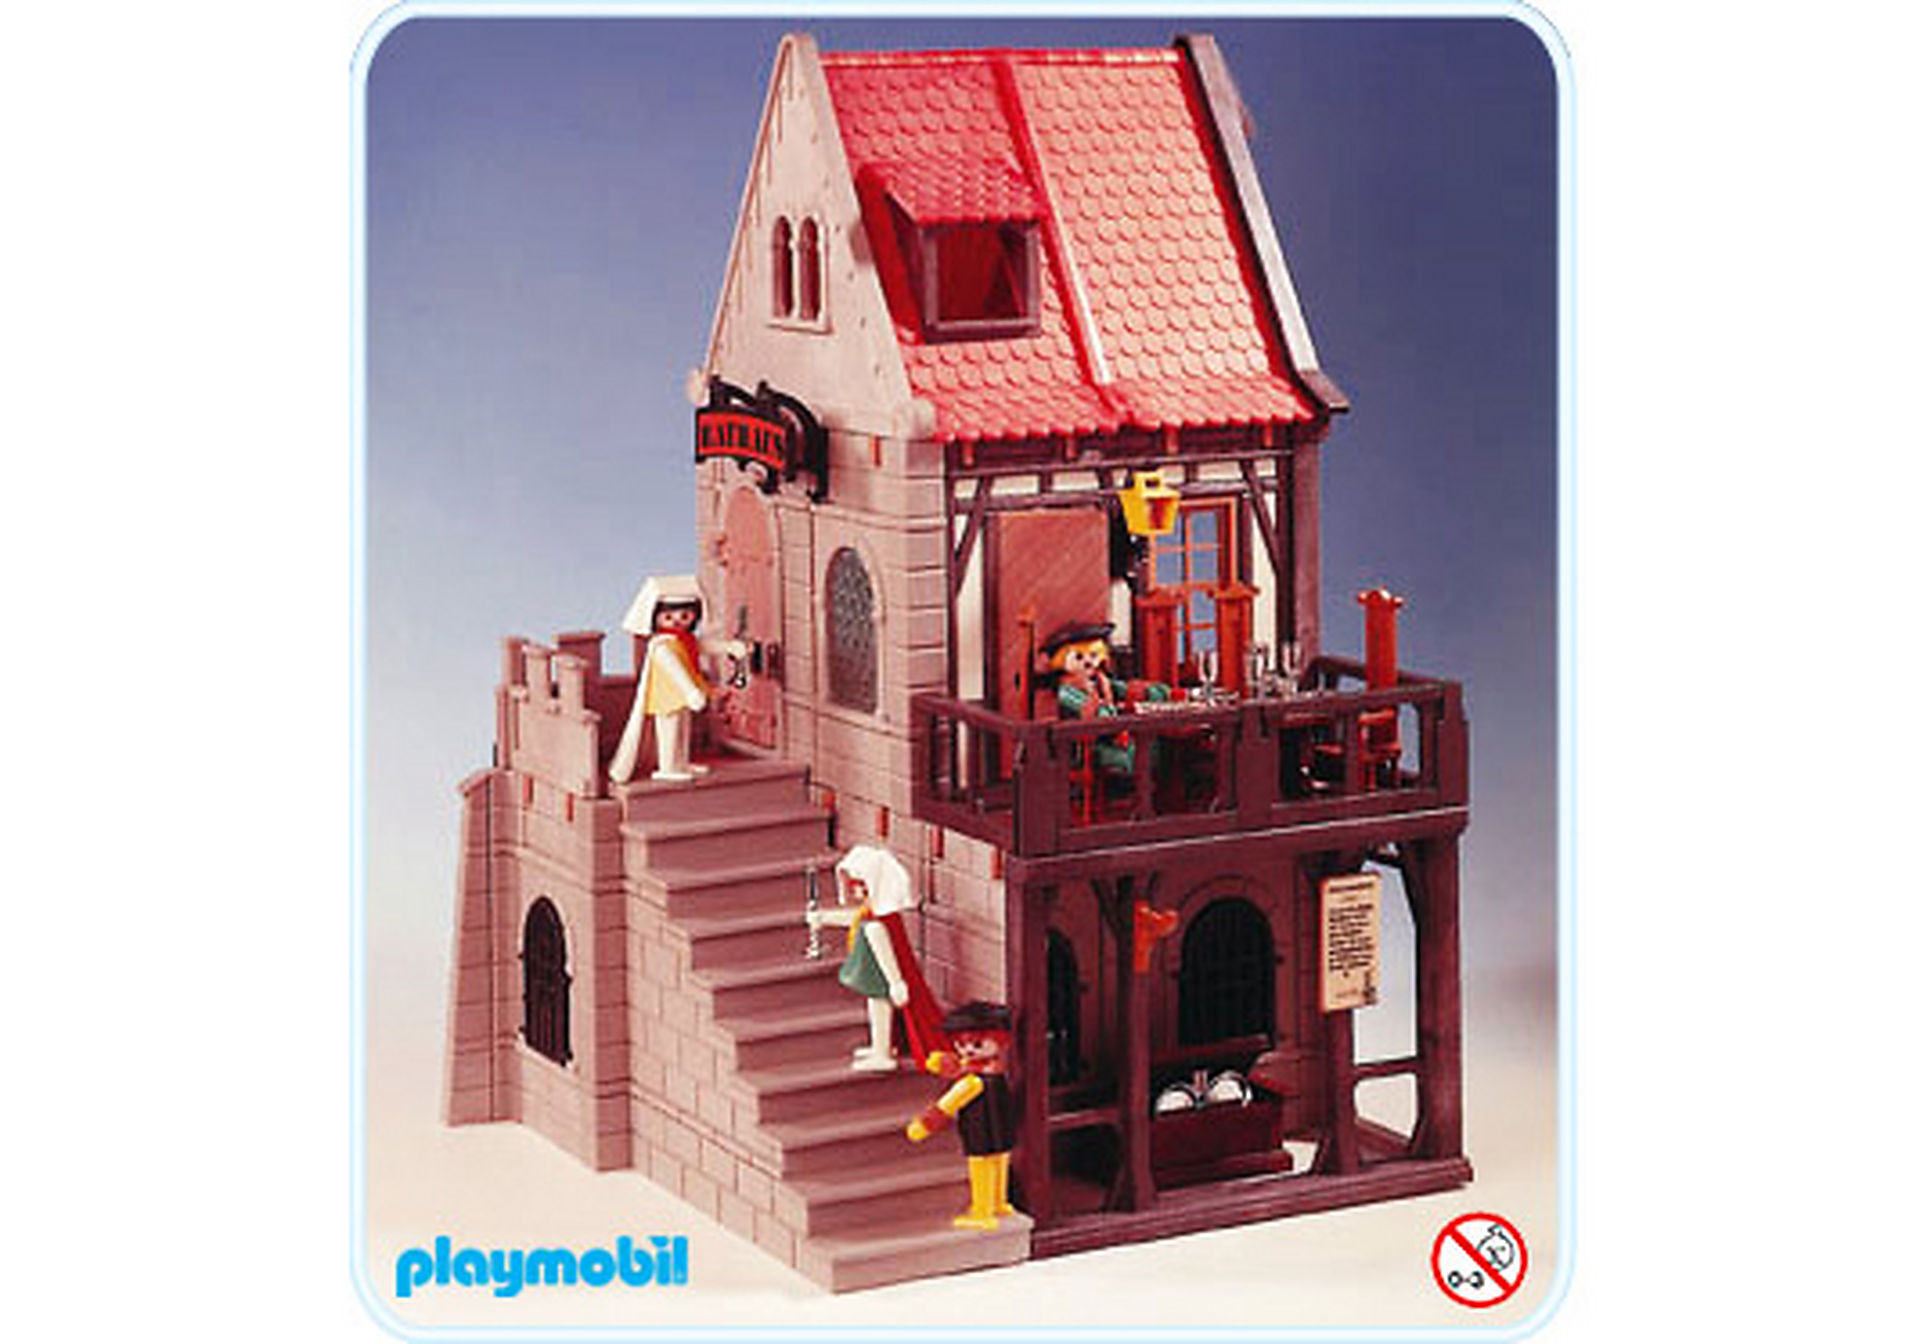 http://media.playmobil.com/i/playmobil/3447-A_product_detail/Rathaus